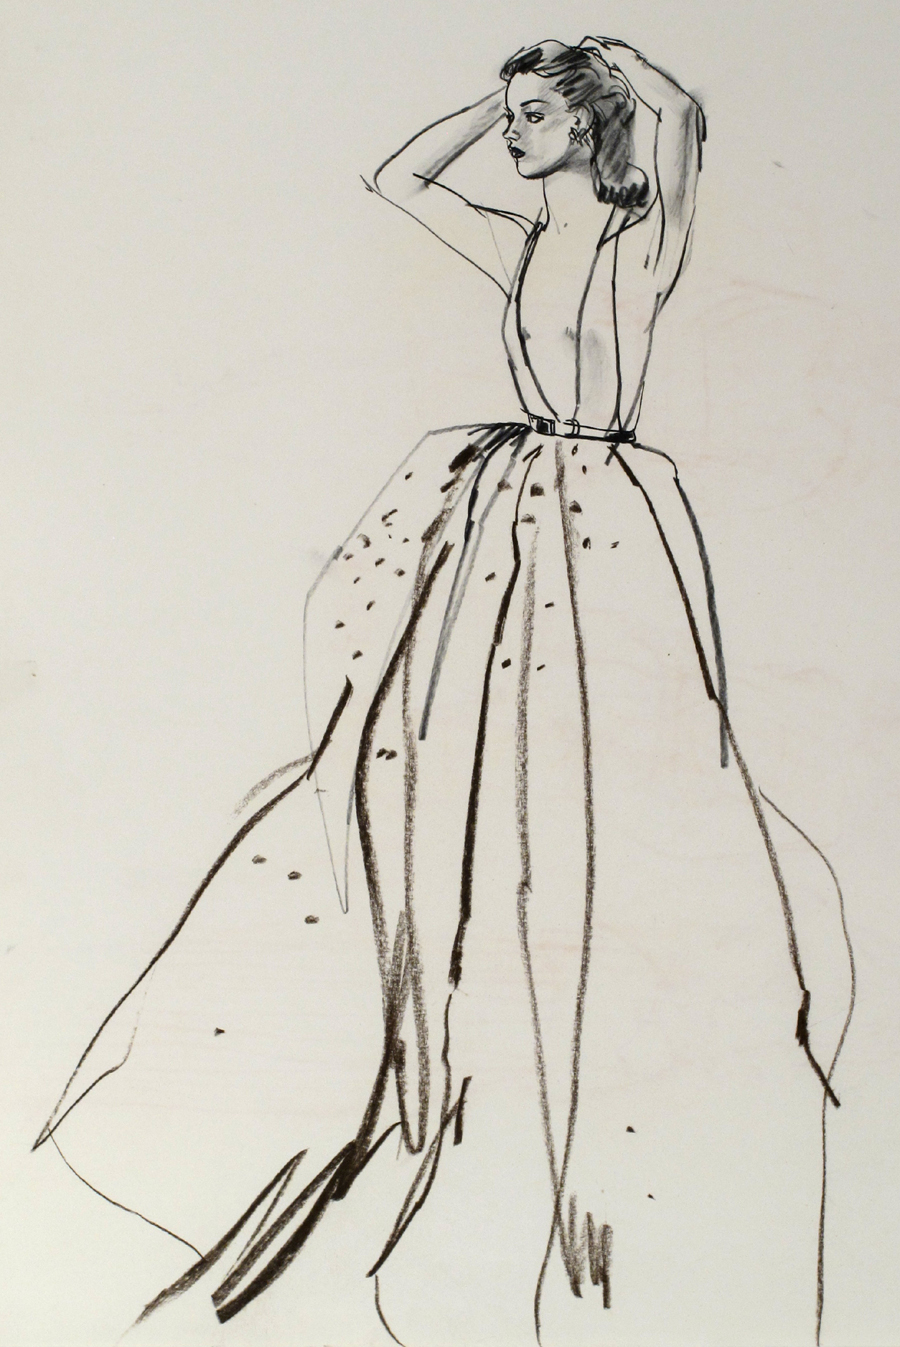 Untitled [Model in Ball Gown]